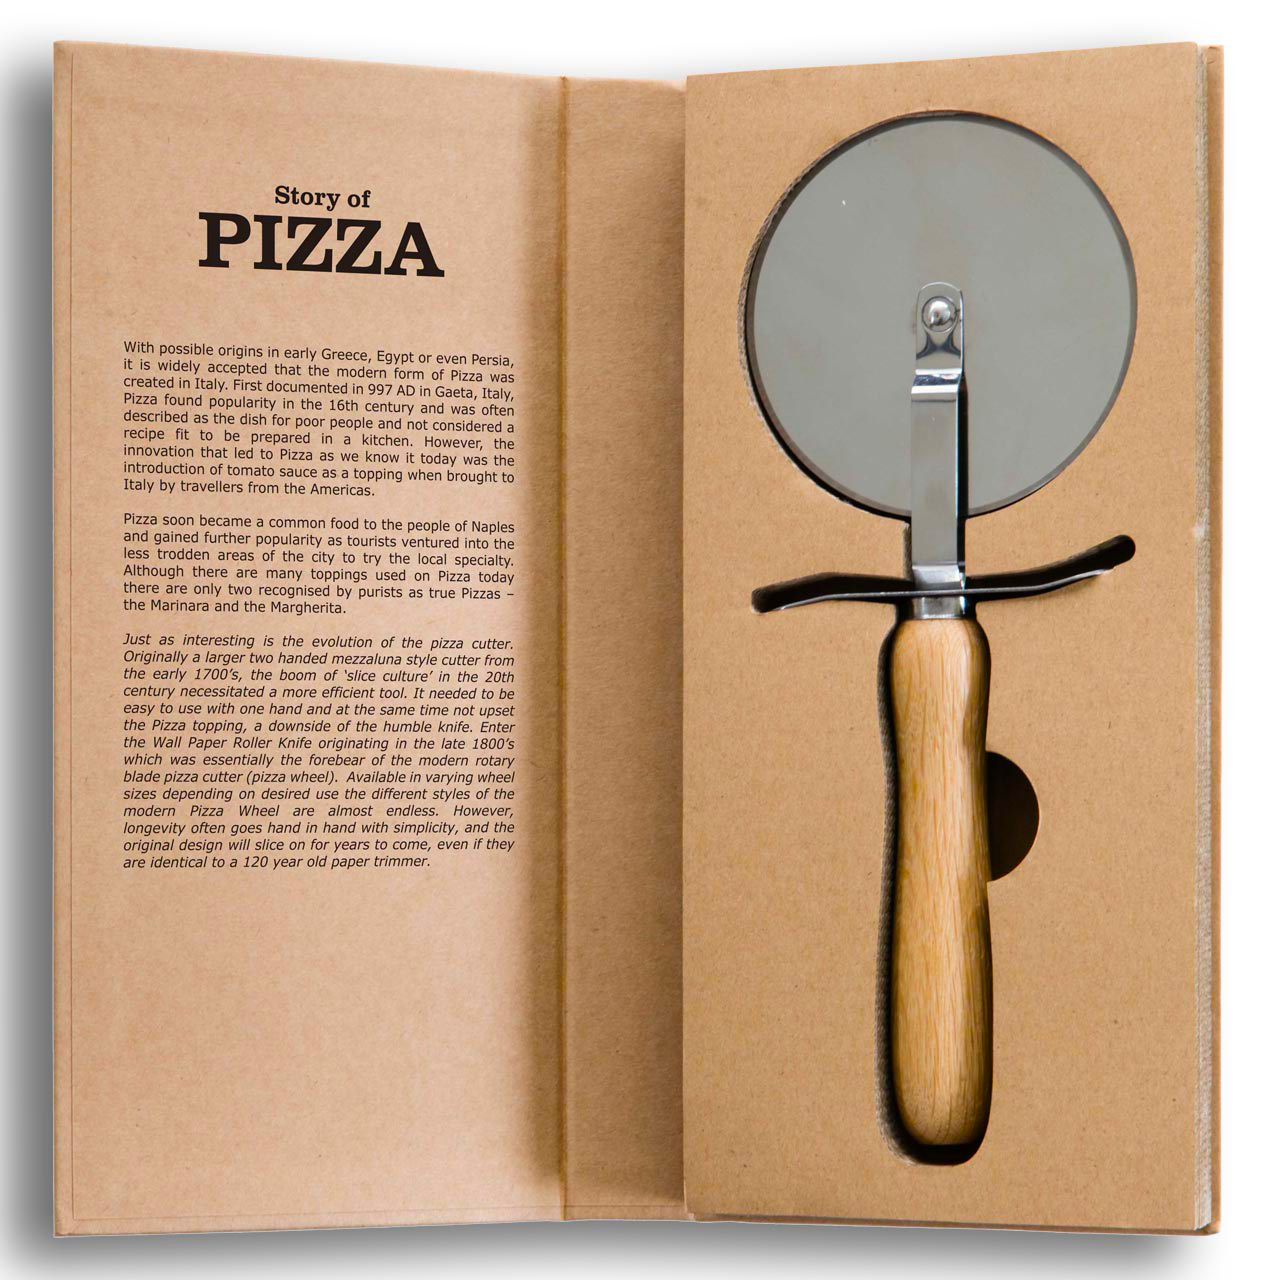 The Story of Pizza pizza cutter | The Design Gift Shop